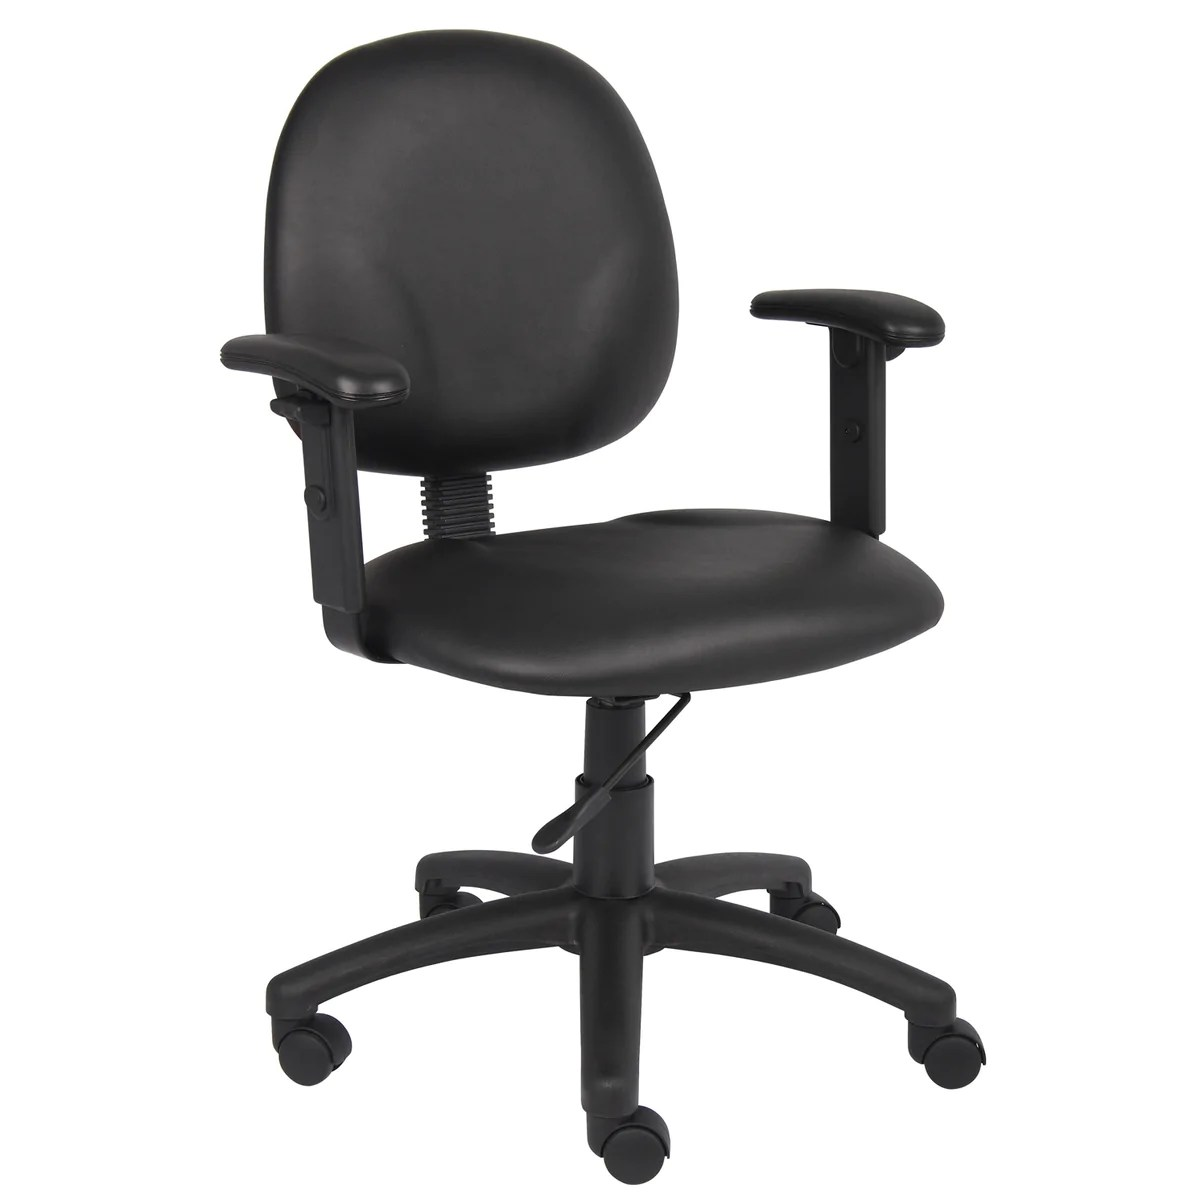 Task Chairs With Arms Boss Chairs Boss Diamond Task Chair In Black Caressoft W Adjustable Arms